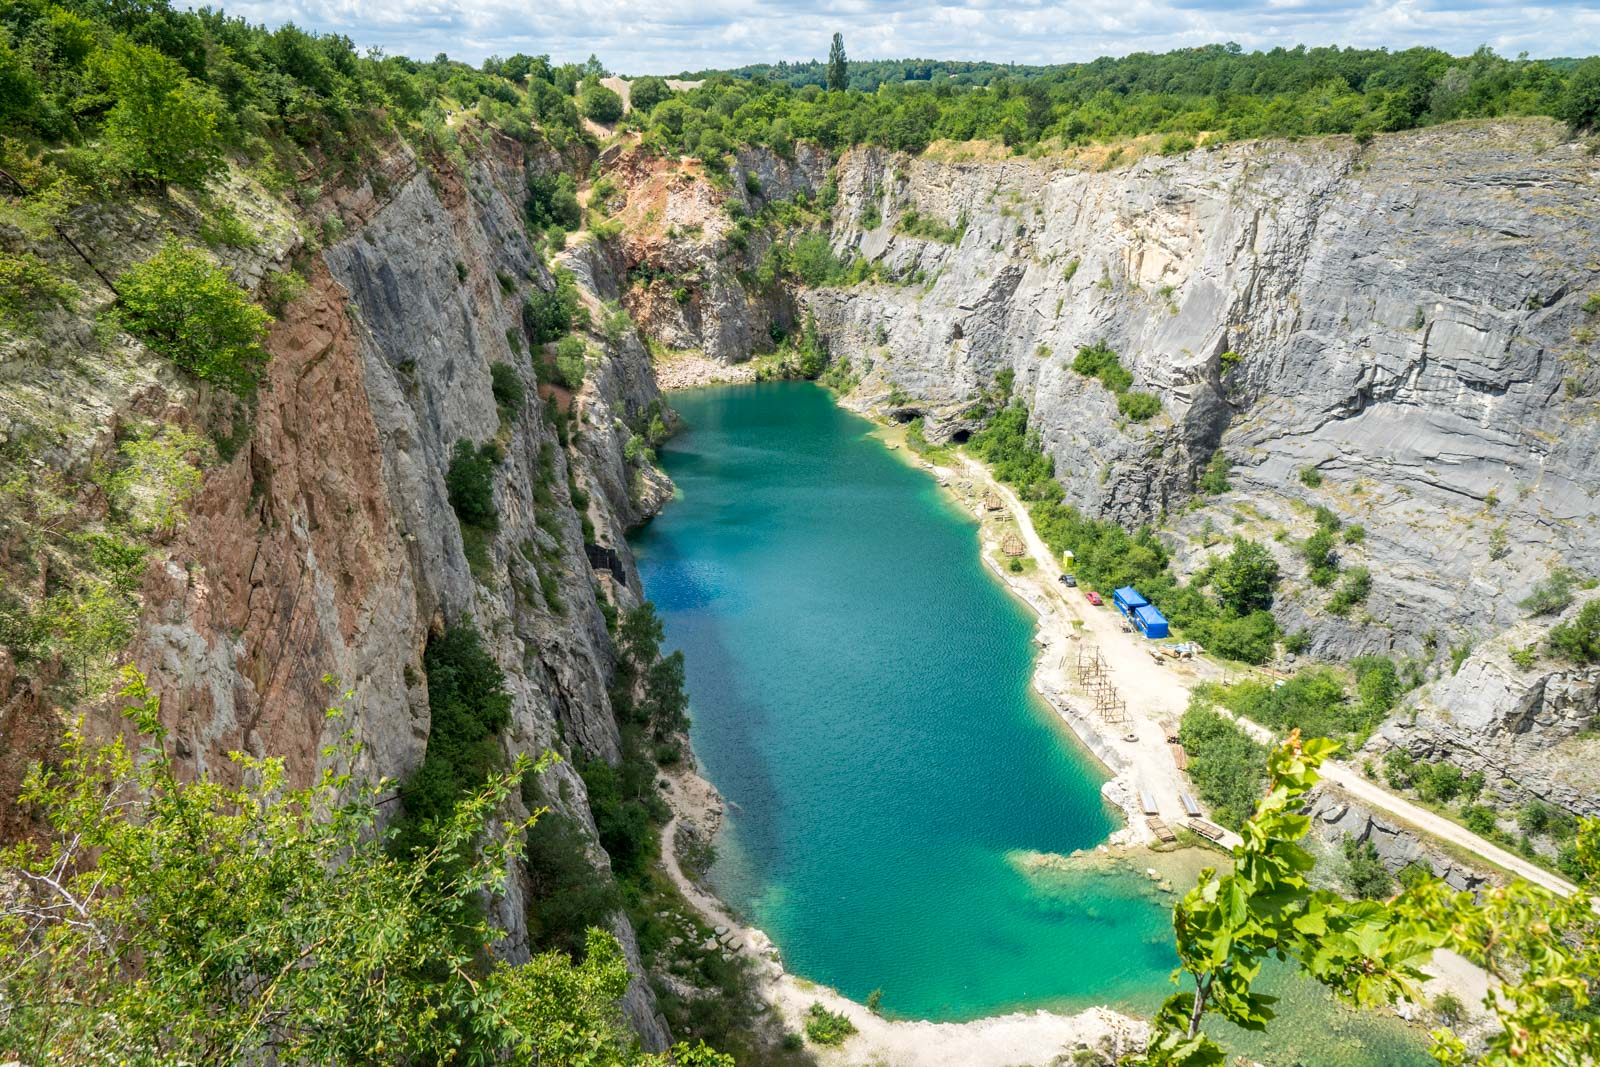 Velka Amerika Quarry, Karlstejn, Czech Republic